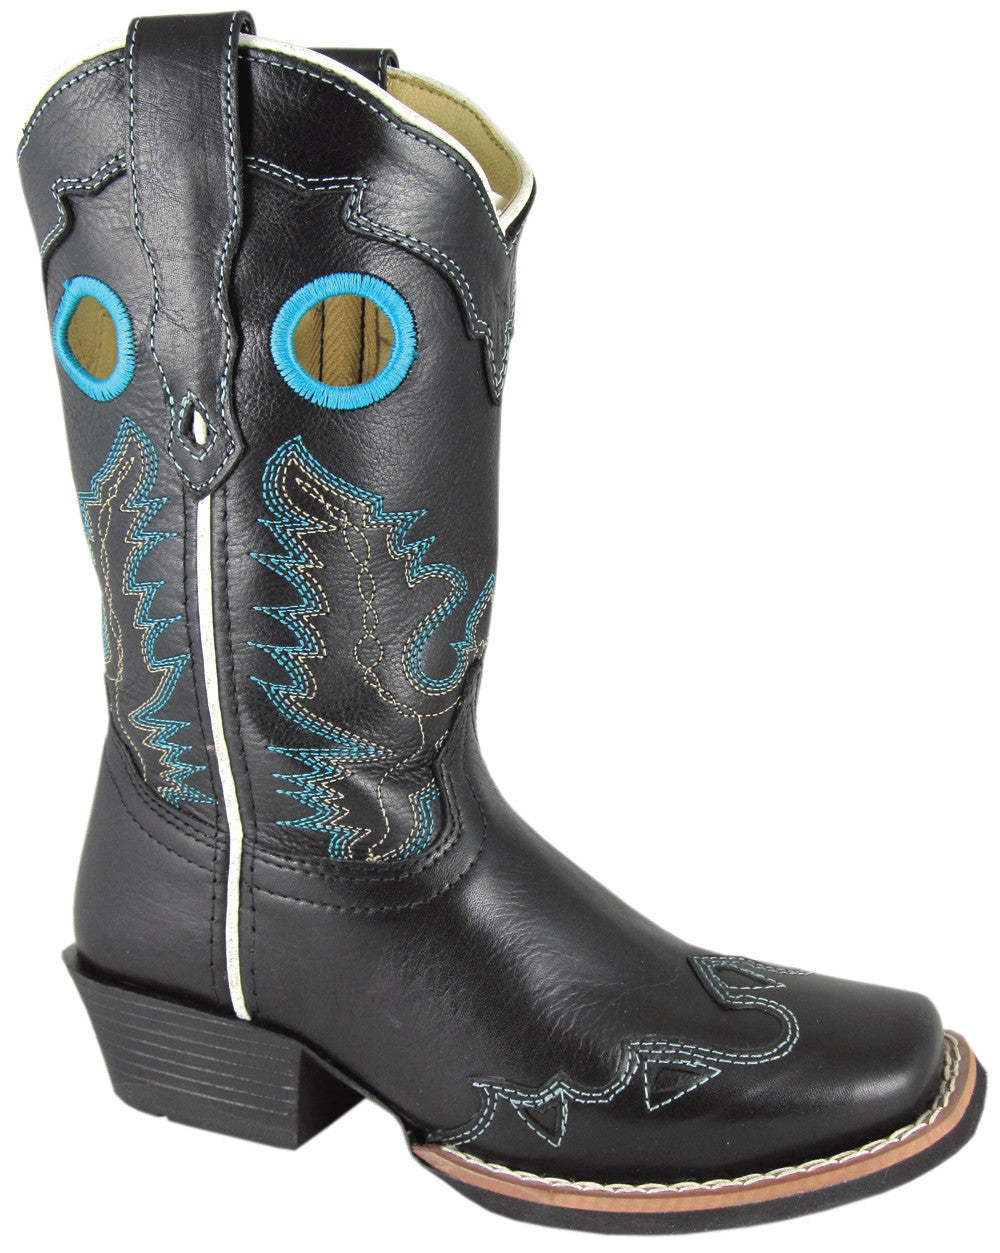 Smoky Mountain Children's El Dorado Leather Boot